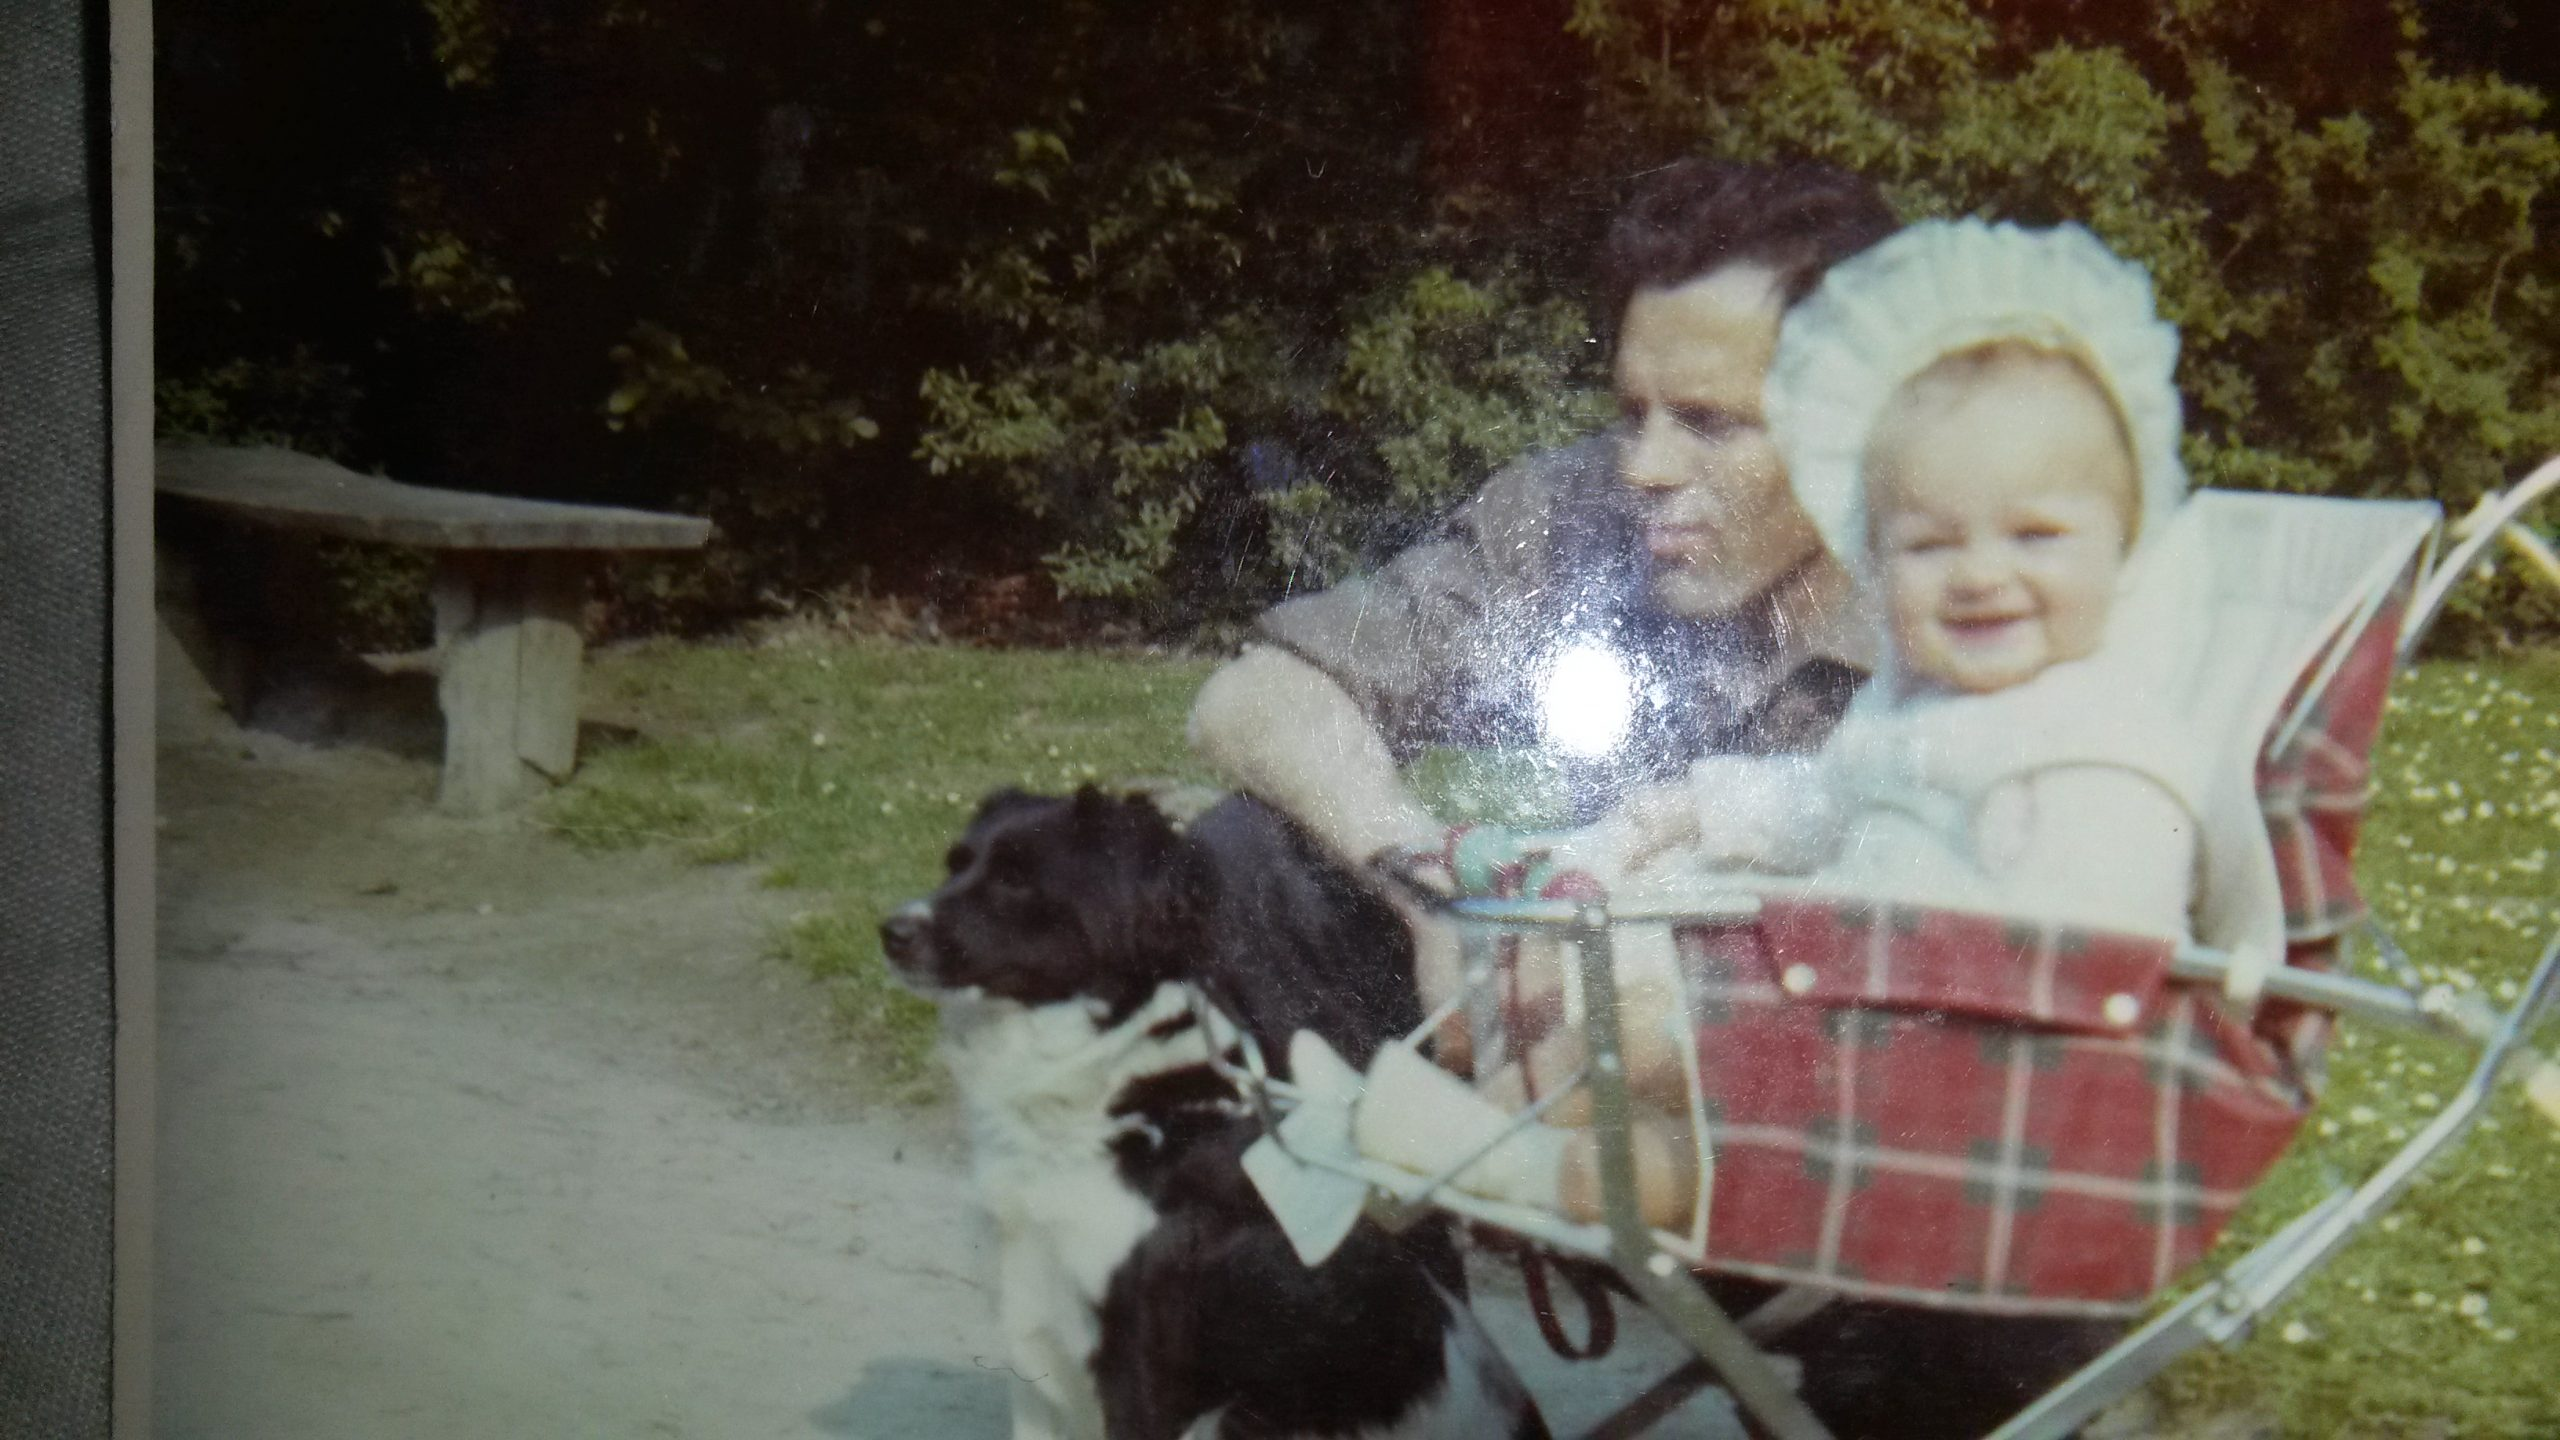 My dad, Pieta the dog and me